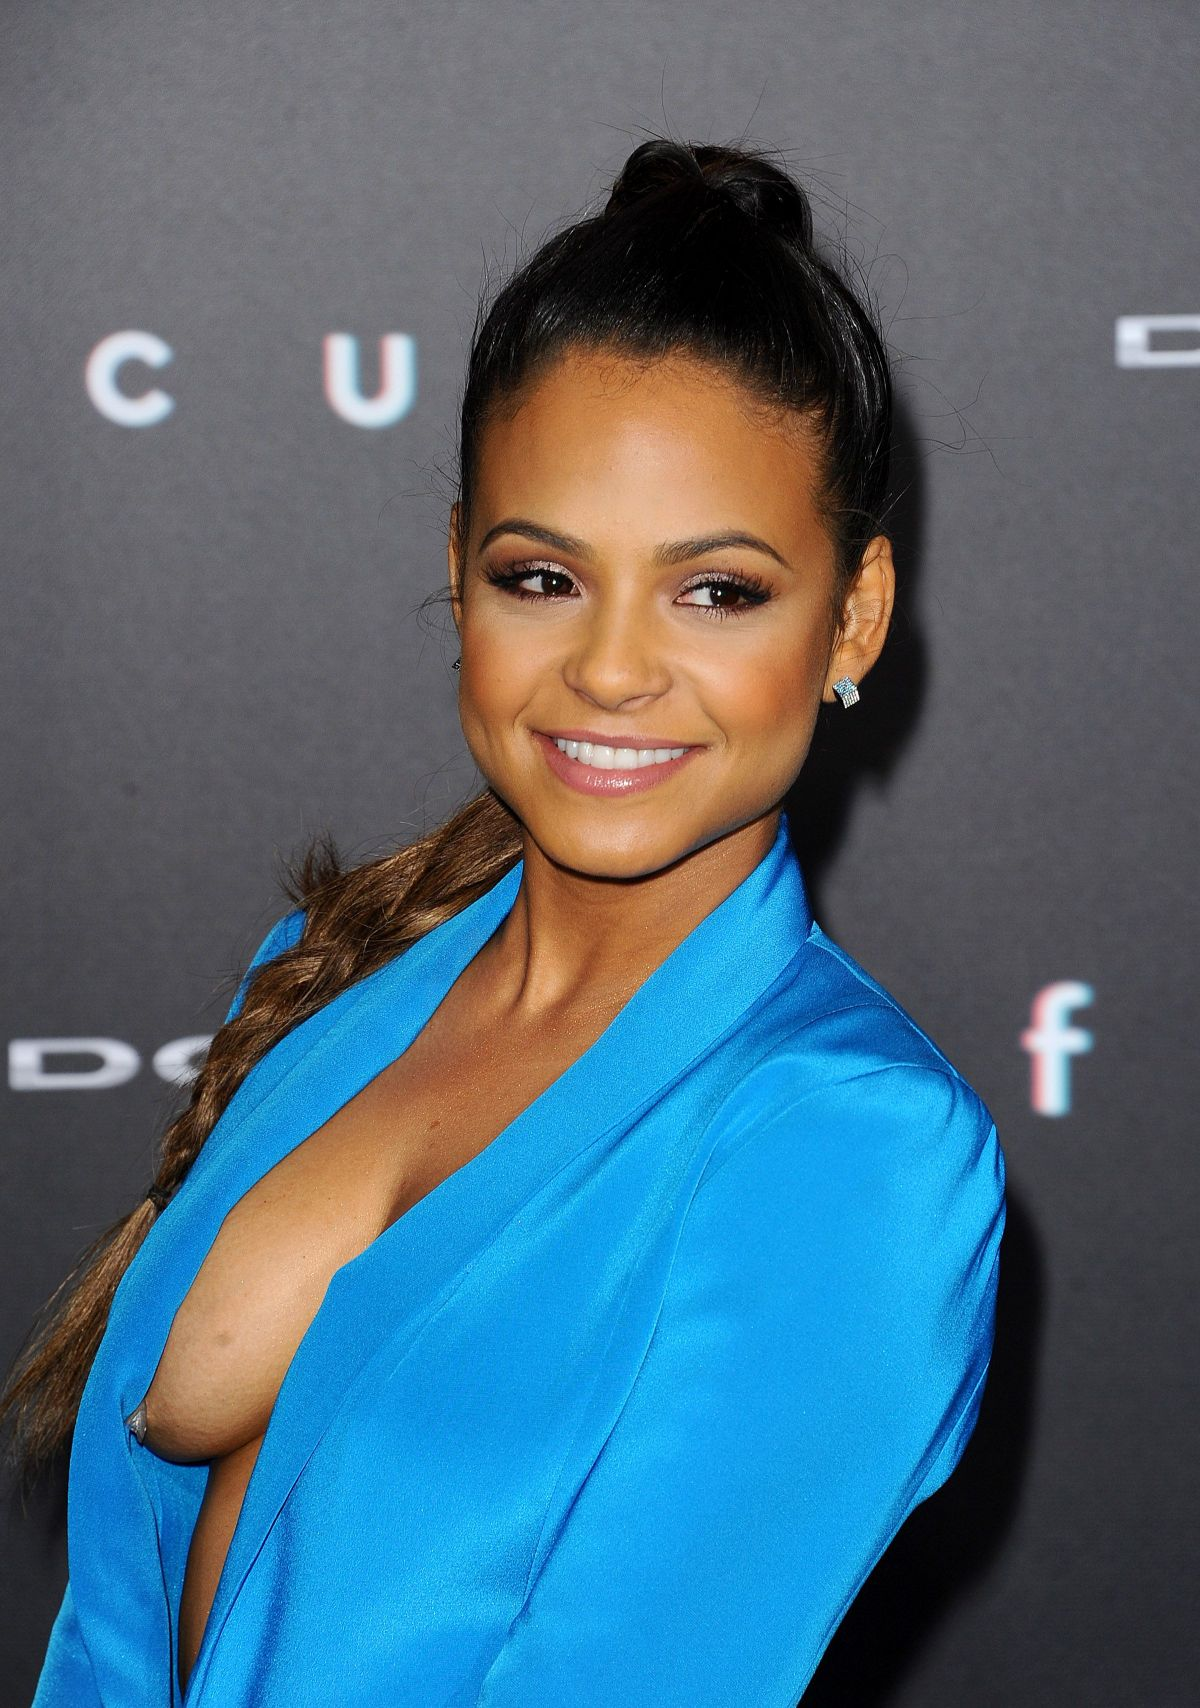 [Image: christina-milian-at-focus-premiere-in-los-angeles_1.jpg]